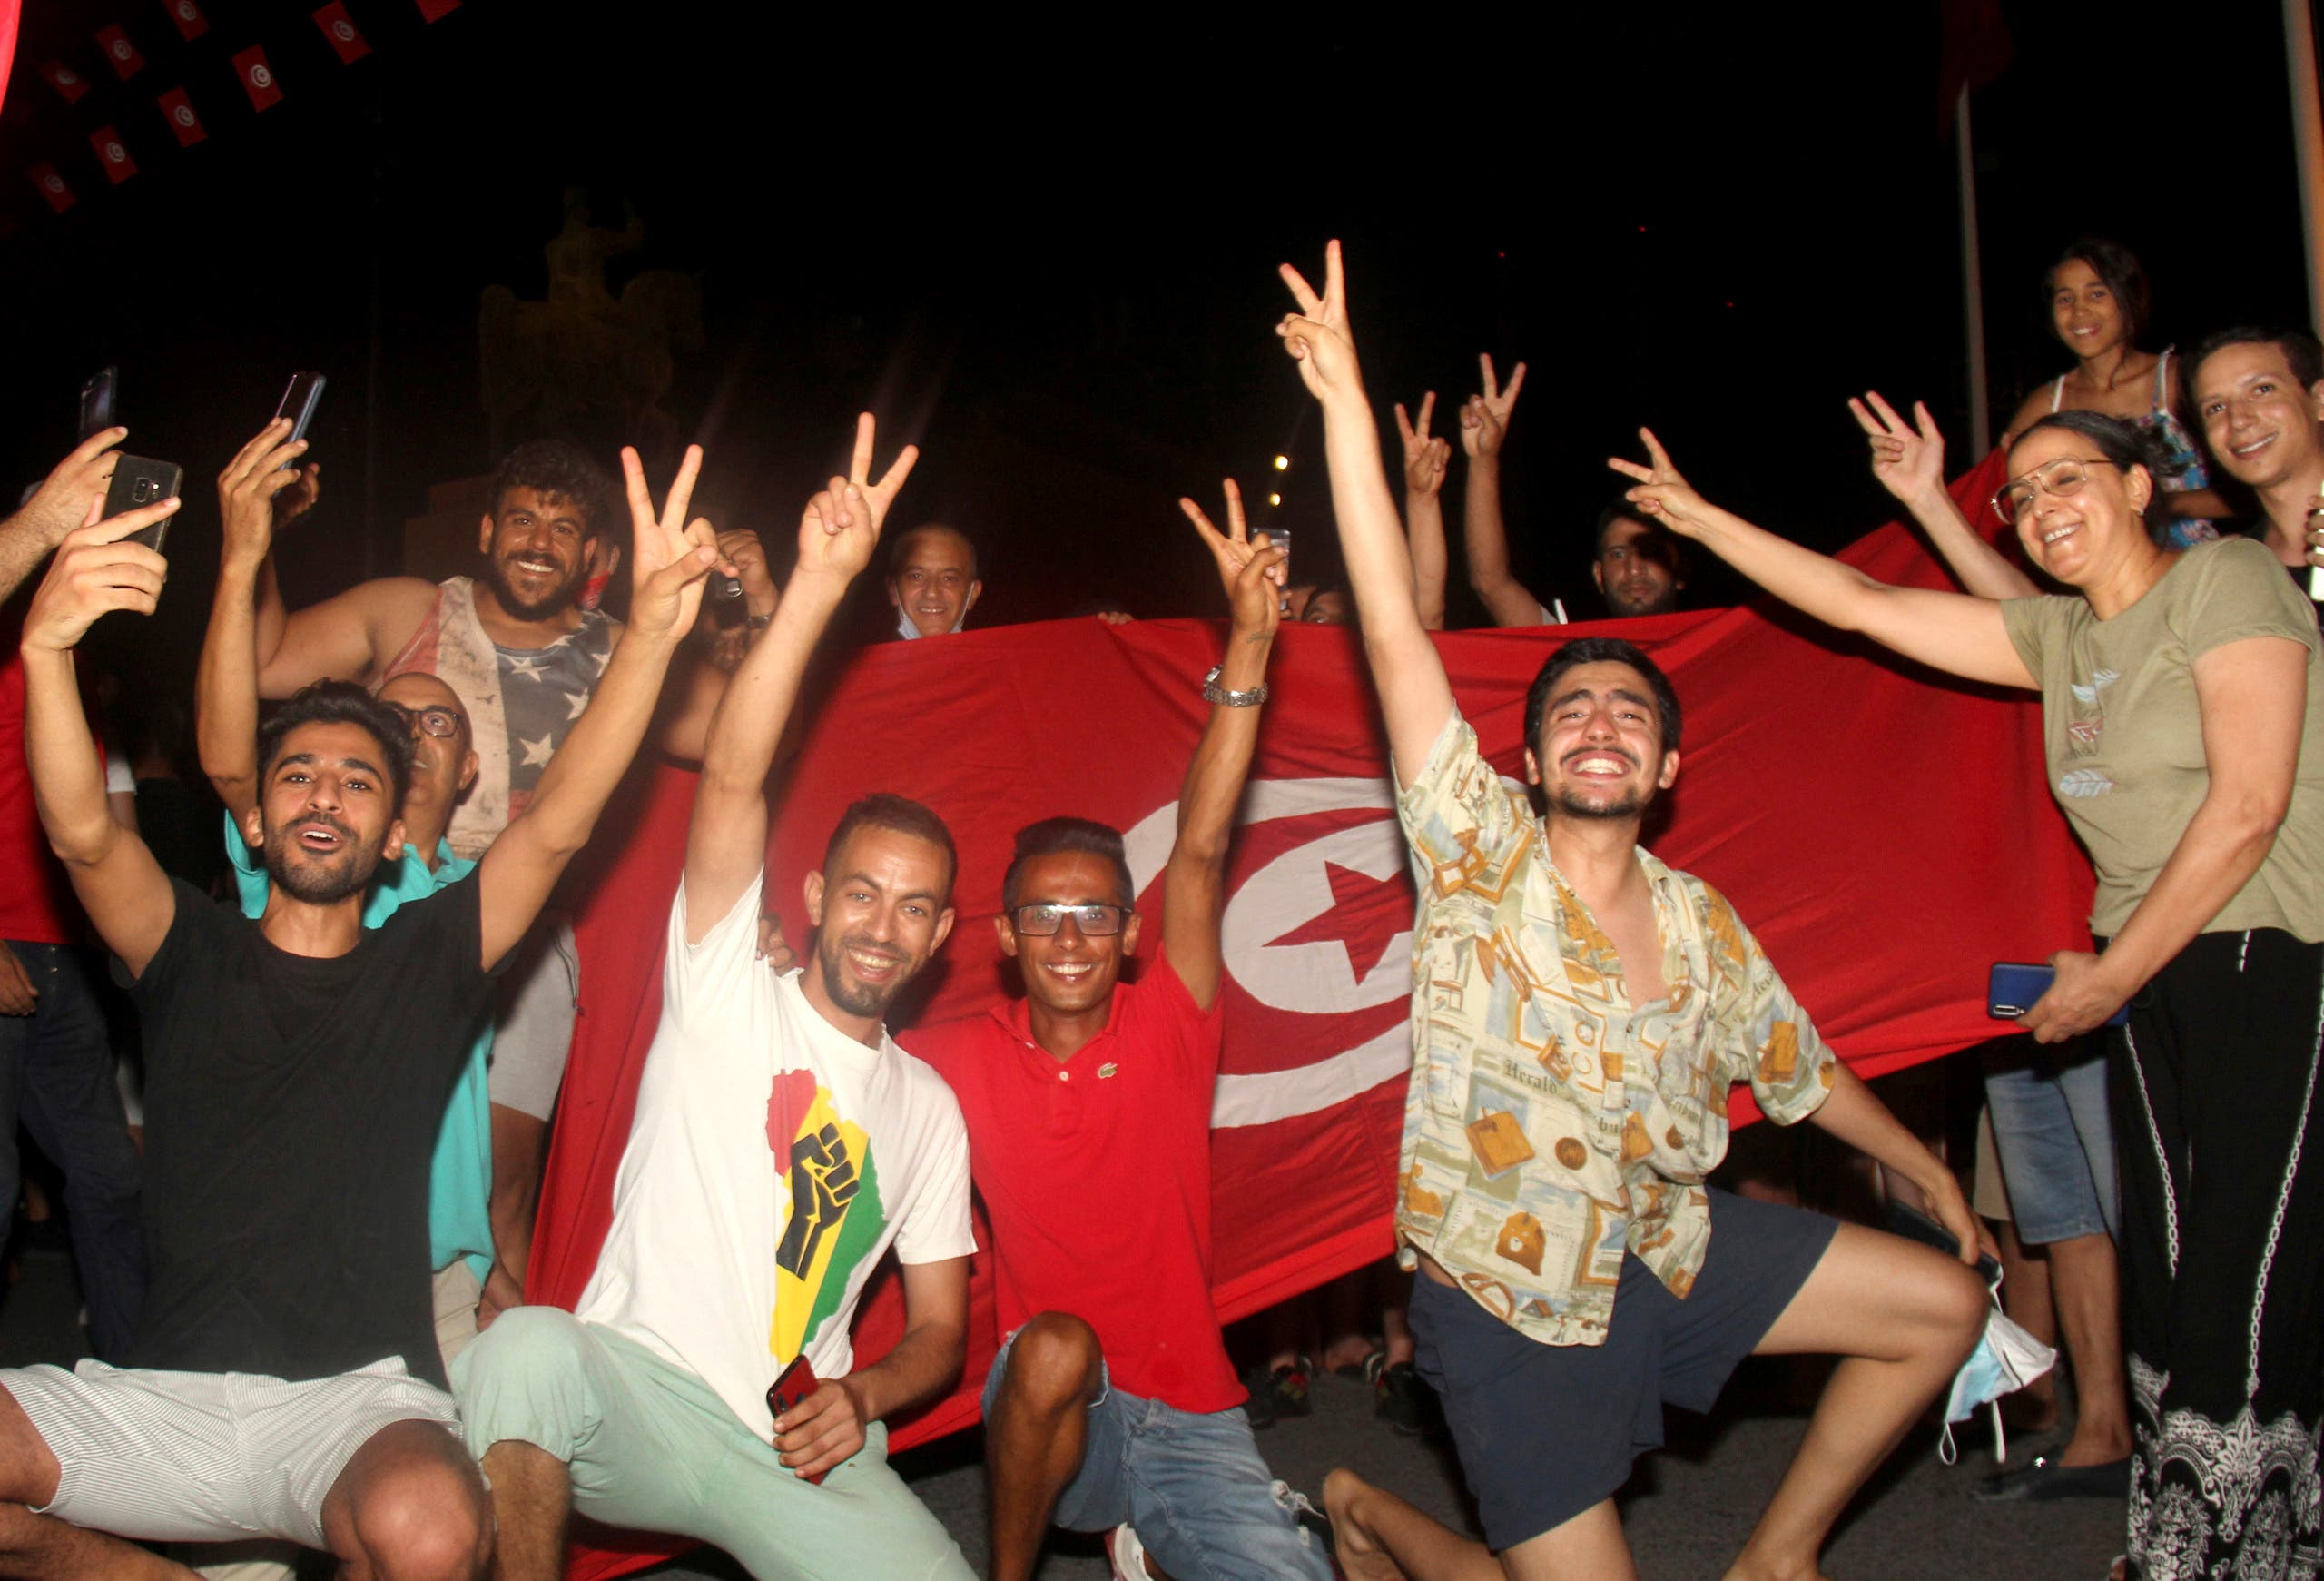 Demonstrators celebrate with a Tunisian national flag during a rally after the president suspended the legislature and fired the prime minister in Tunis, Tunisia, Sunday, July 25, 2021. (AP)